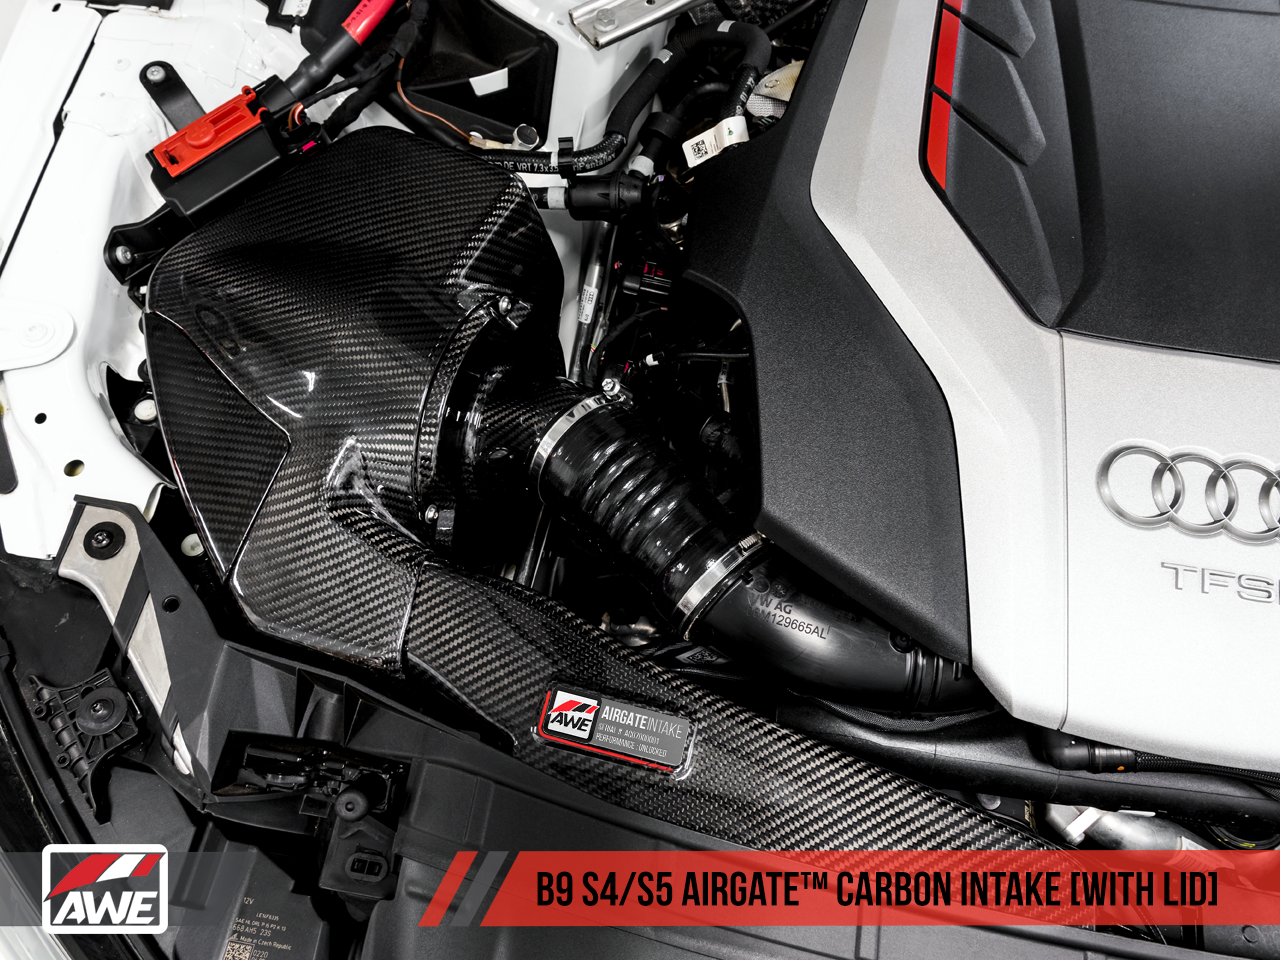 awe airgate carbon intake for the audi b9 s5 s4. Black Bedroom Furniture Sets. Home Design Ideas